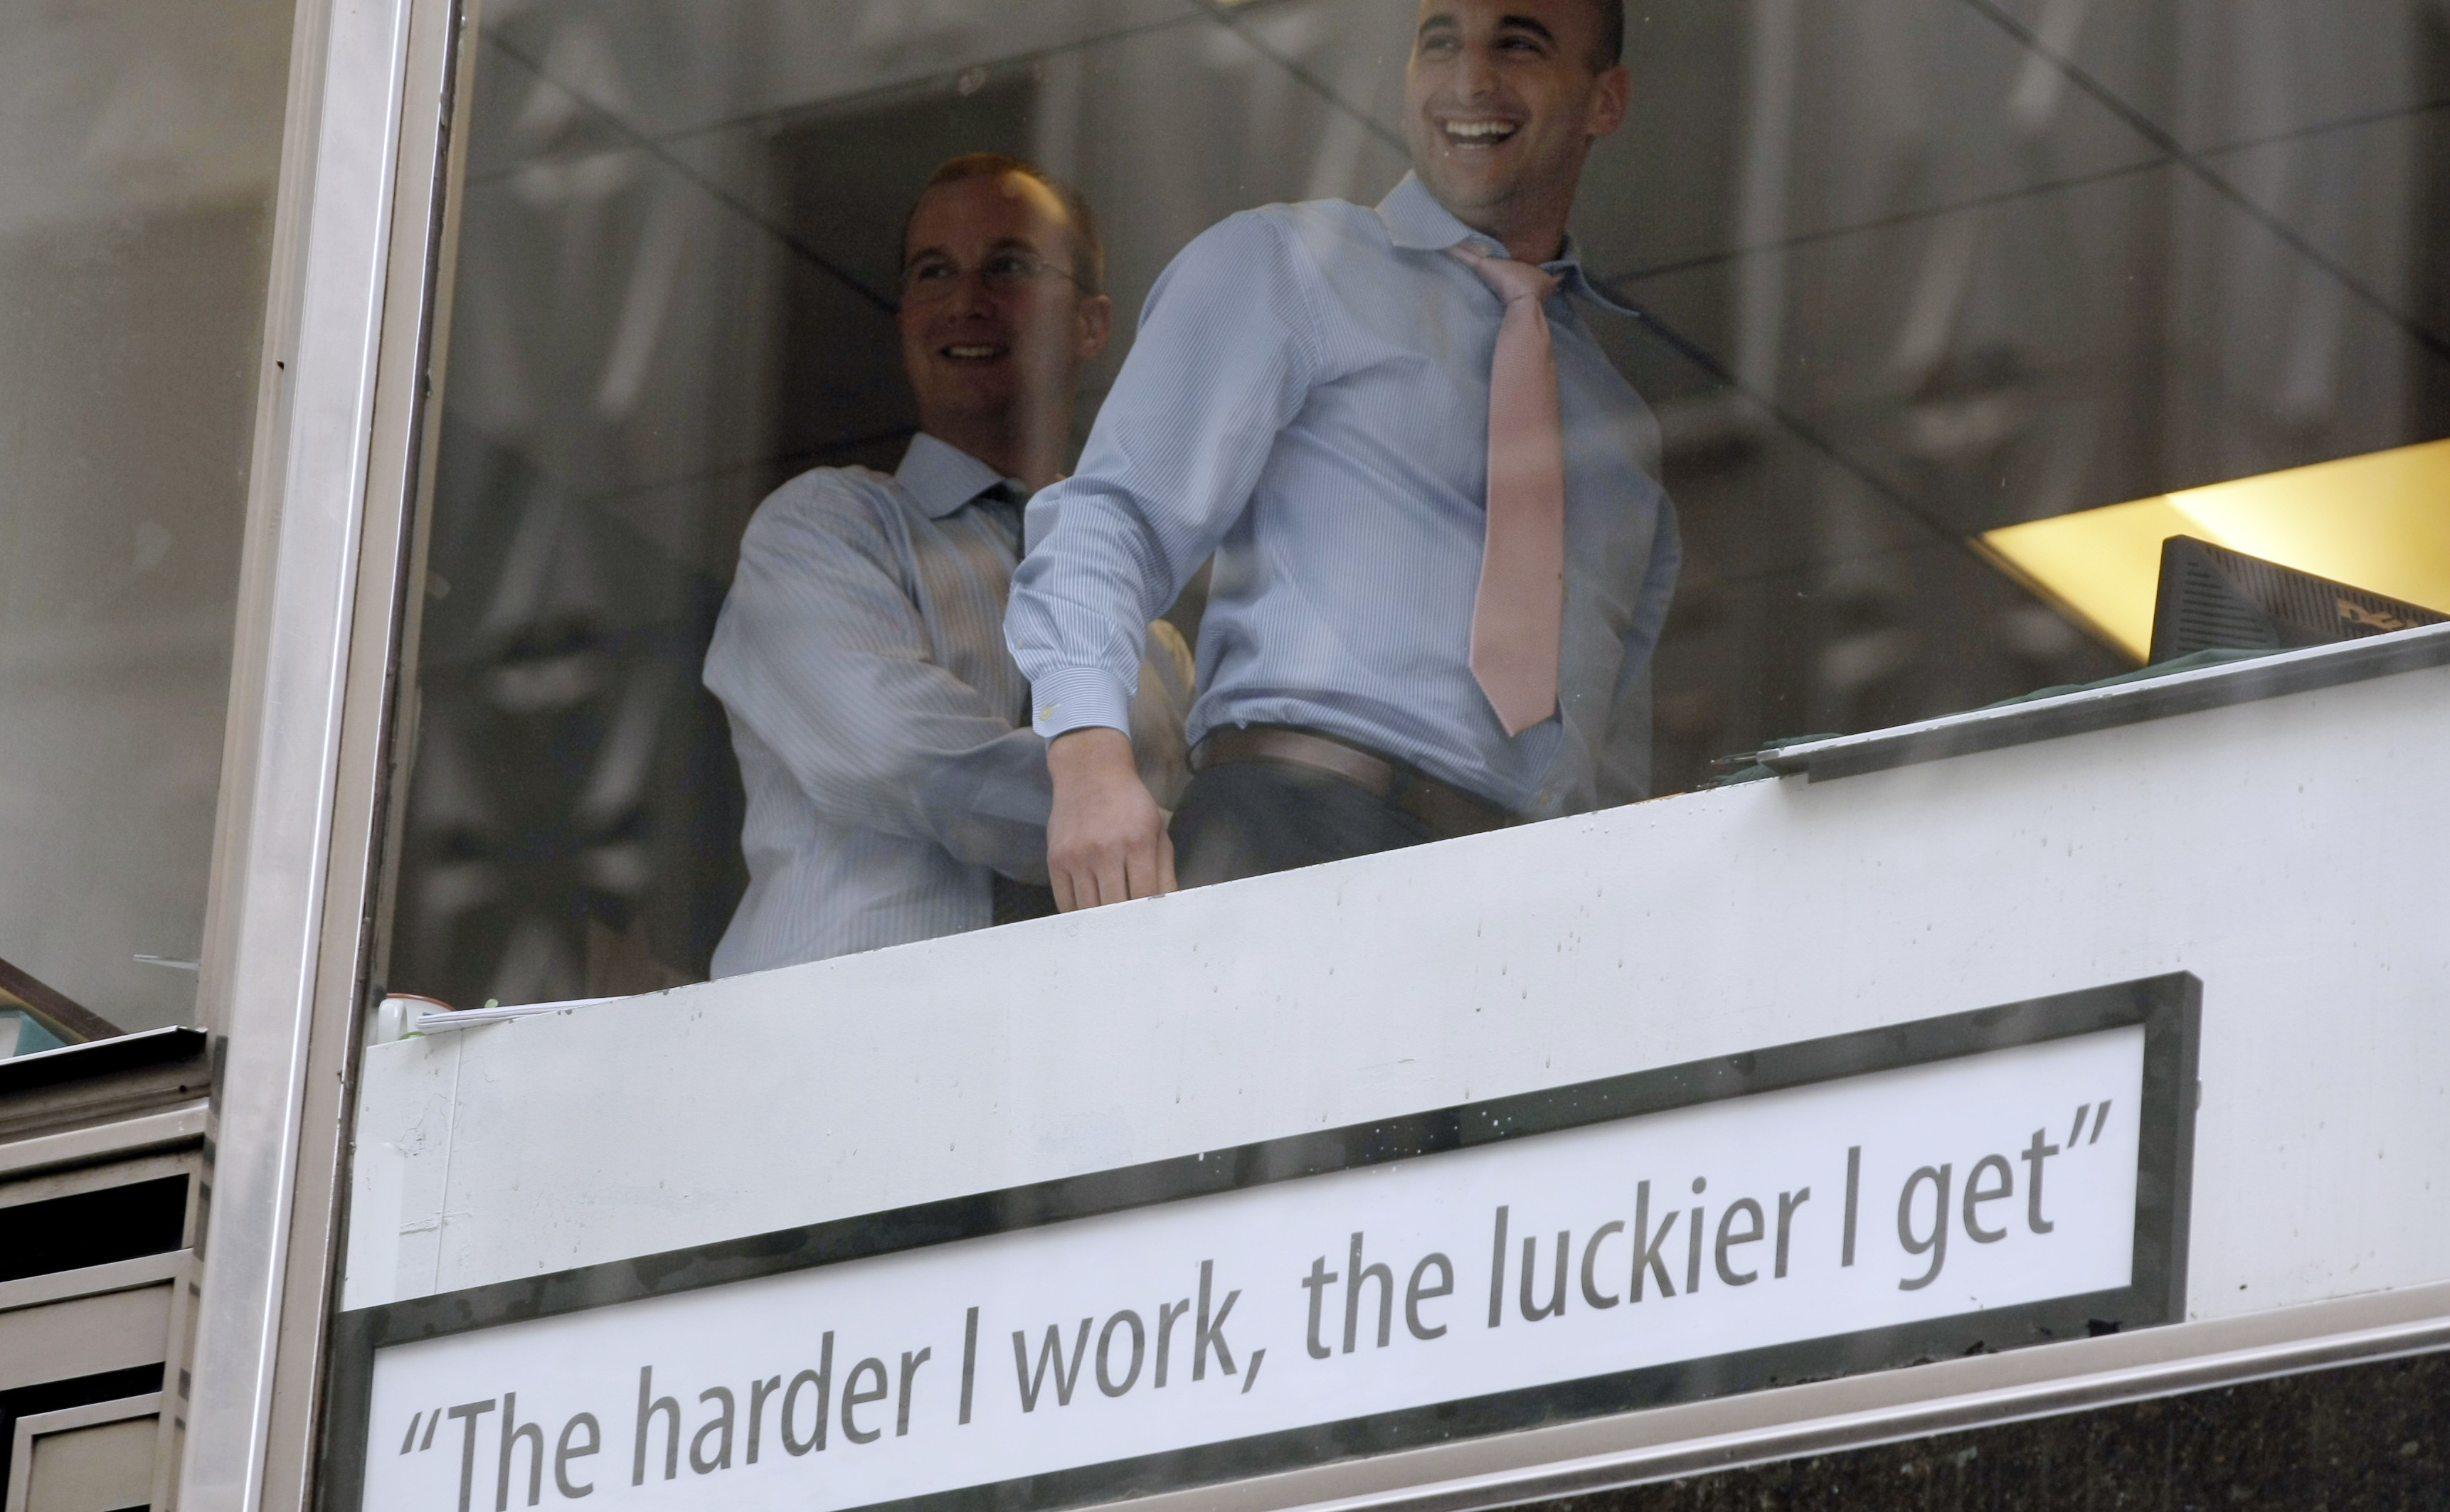 Businessmen in window laugh after placing sign on their window above where Occupy Wall Street protesters were marching along East 42nd street in New York City